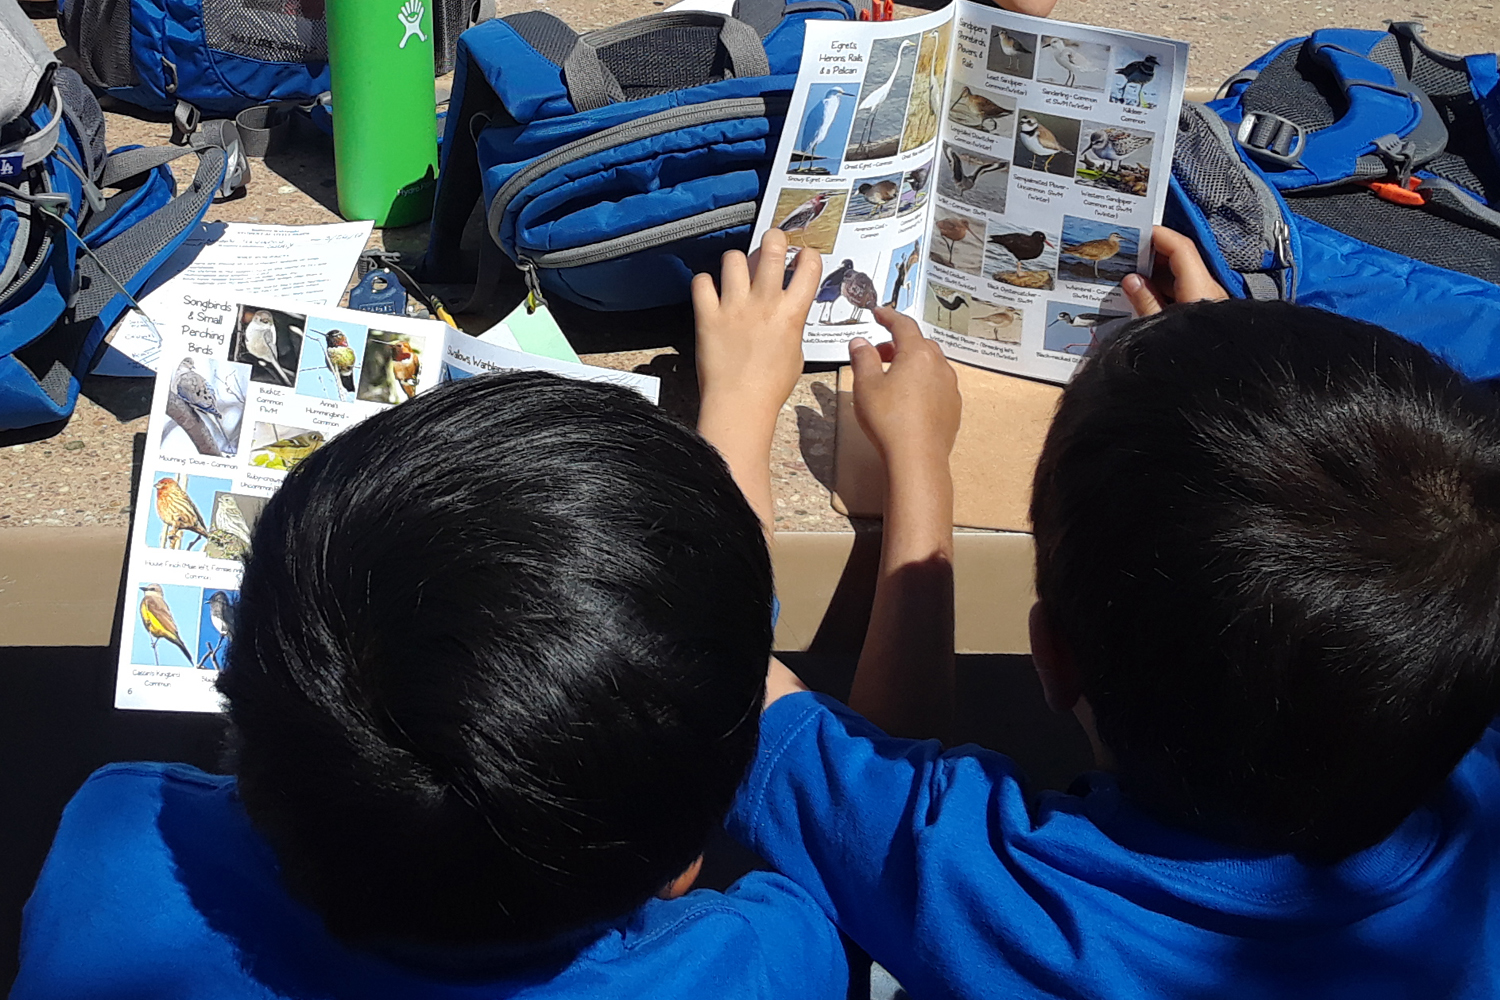 Close-up of two boys reading field guide